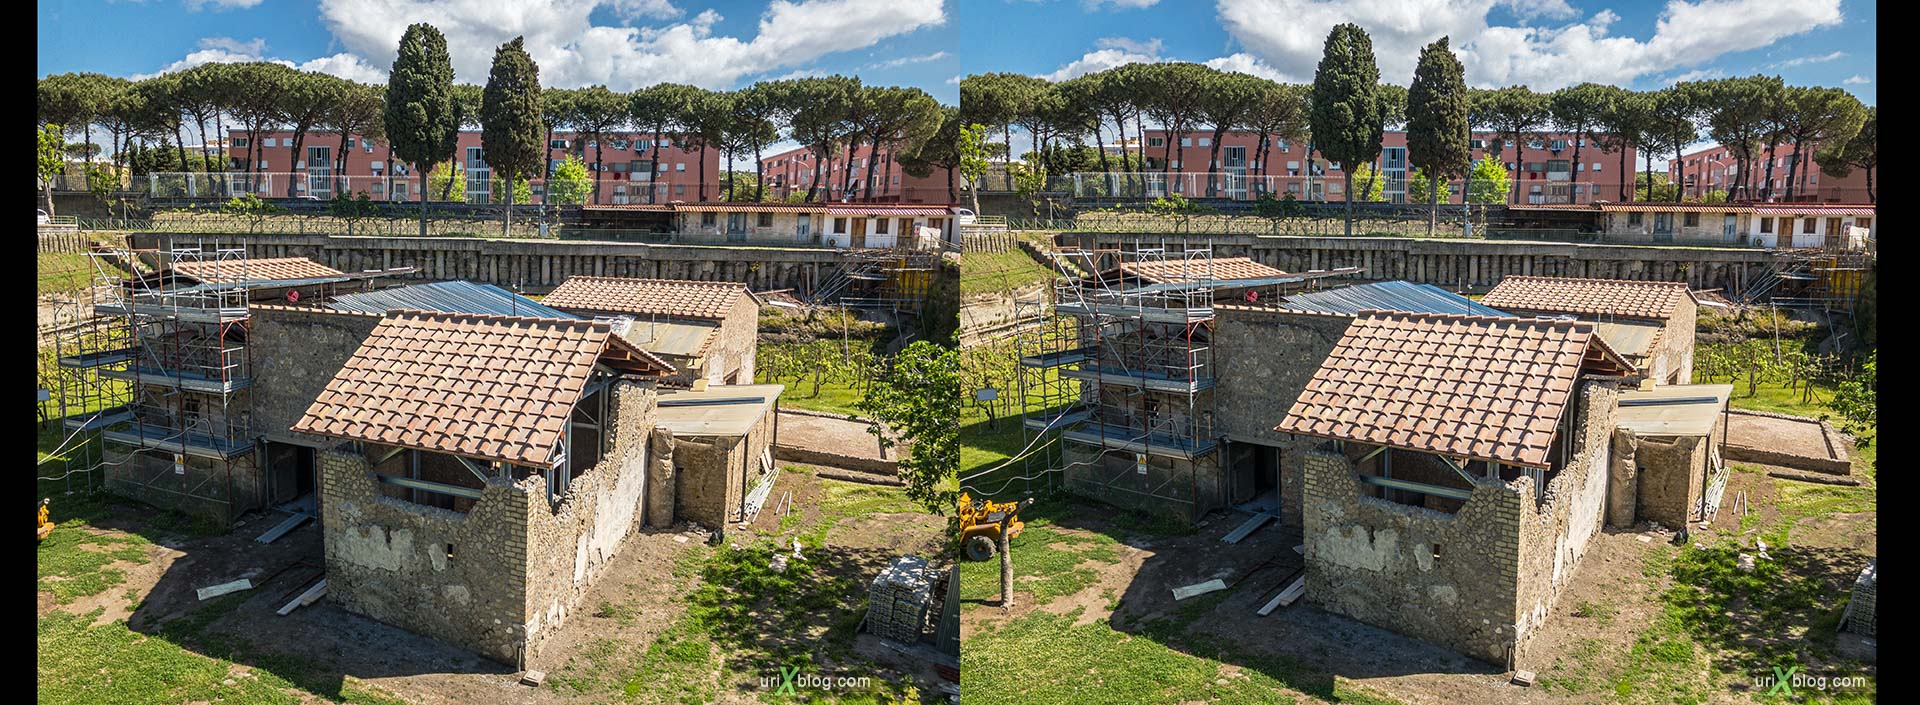 Museum, excavations, villa Regina, Boscoreale, Pompei, Italy, 3D, stereo pair, cross-eyed, crossview, cross view stereo pair, stereoscopic